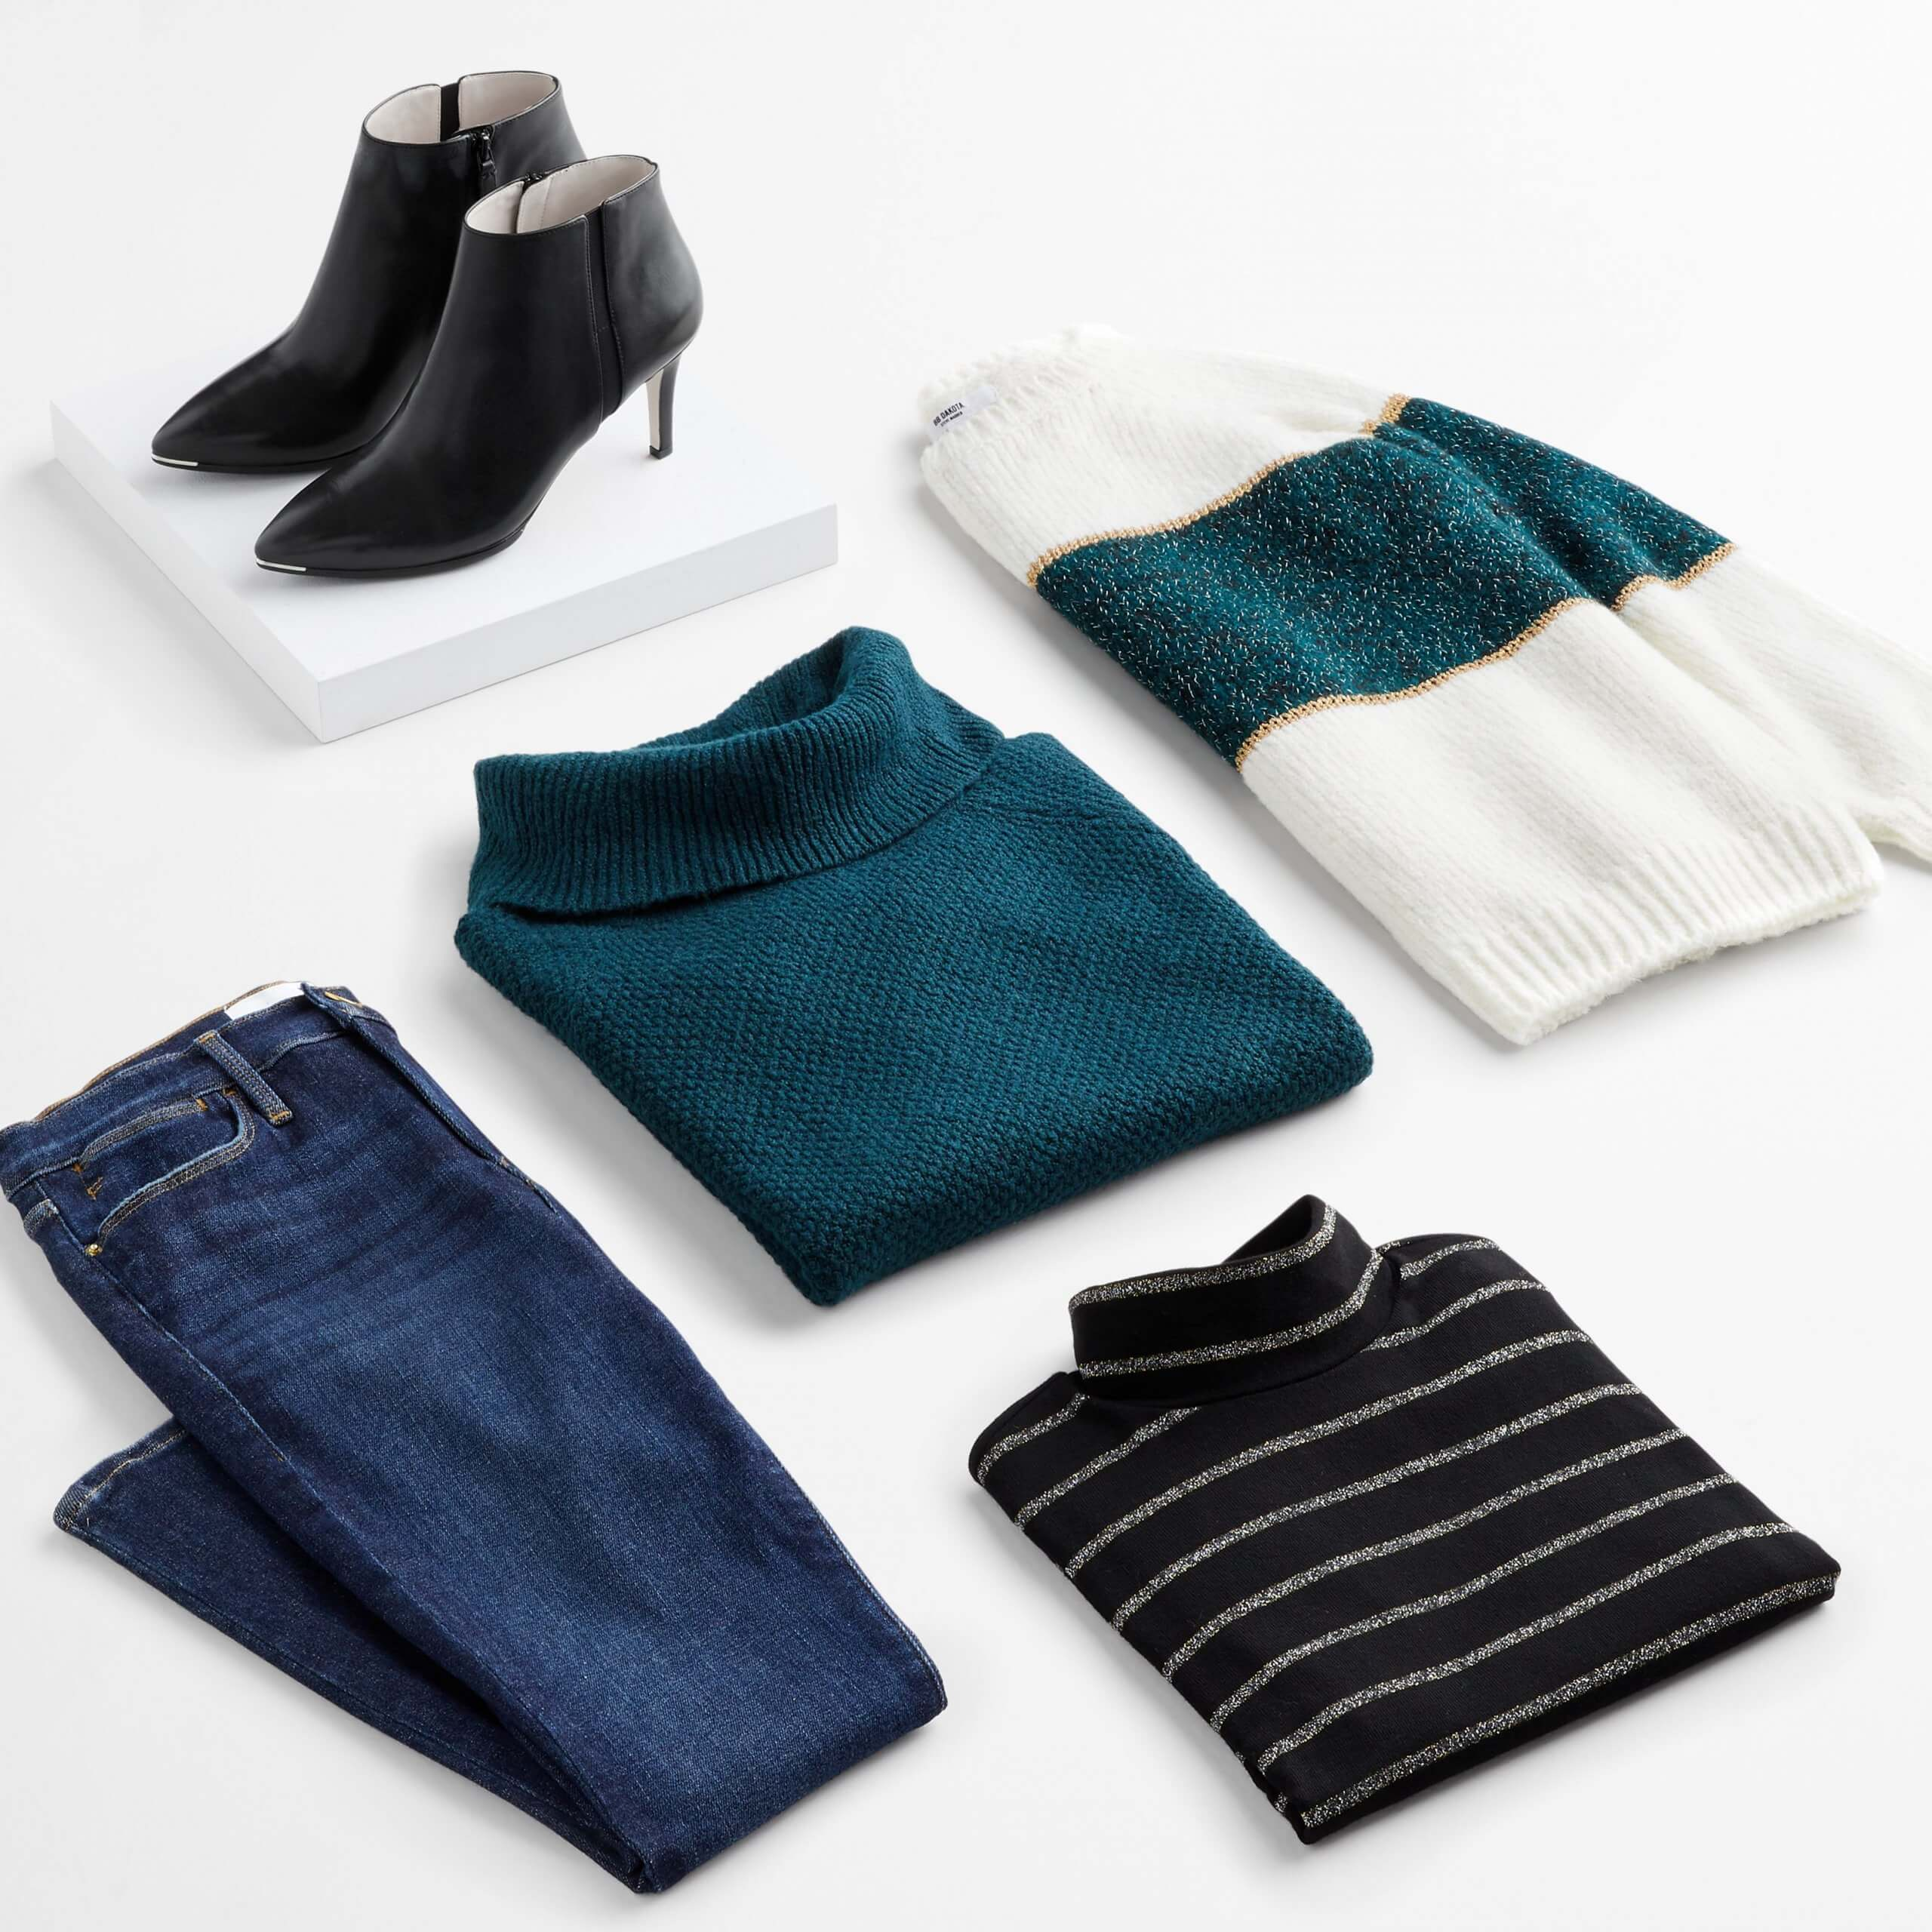 Stitch Fix Women's outfit laydown featuring skinny jeans, teal green turtleneck sweater, white and green pullover, black striped turtleneck, and black heeled booties on a white box.